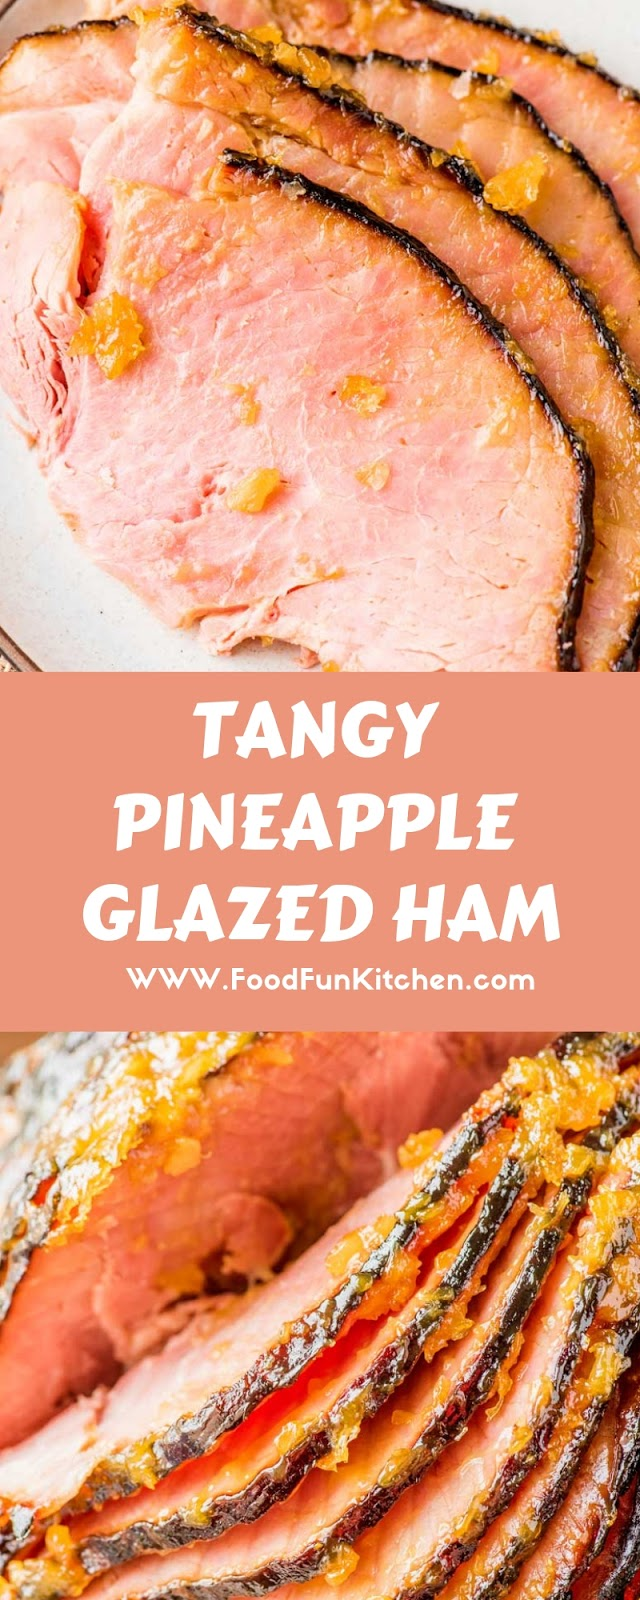 TANGY PINEAPPLE GLAZED HAM